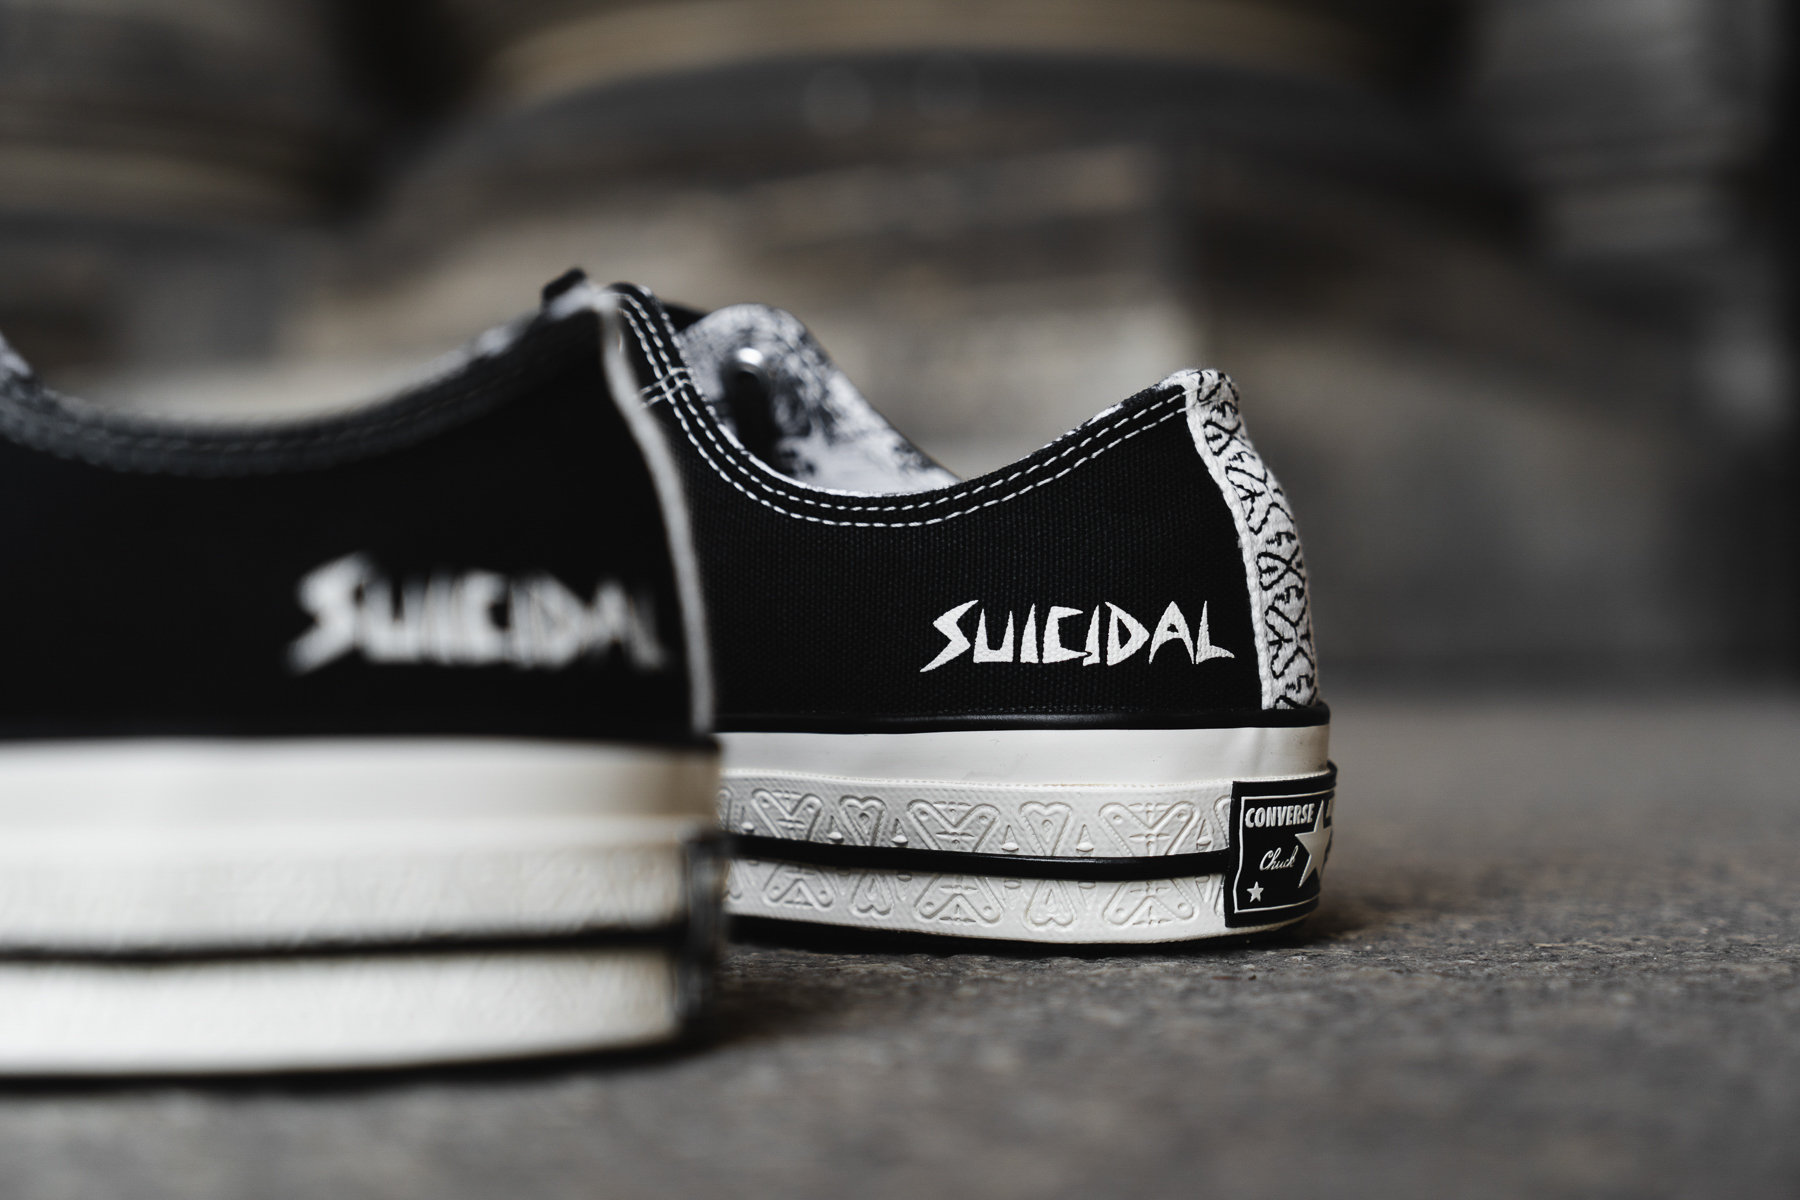 4857ffa0f17f58 Converse x Suicidal Tendencies Capsule Collection - OVERKILL Blog